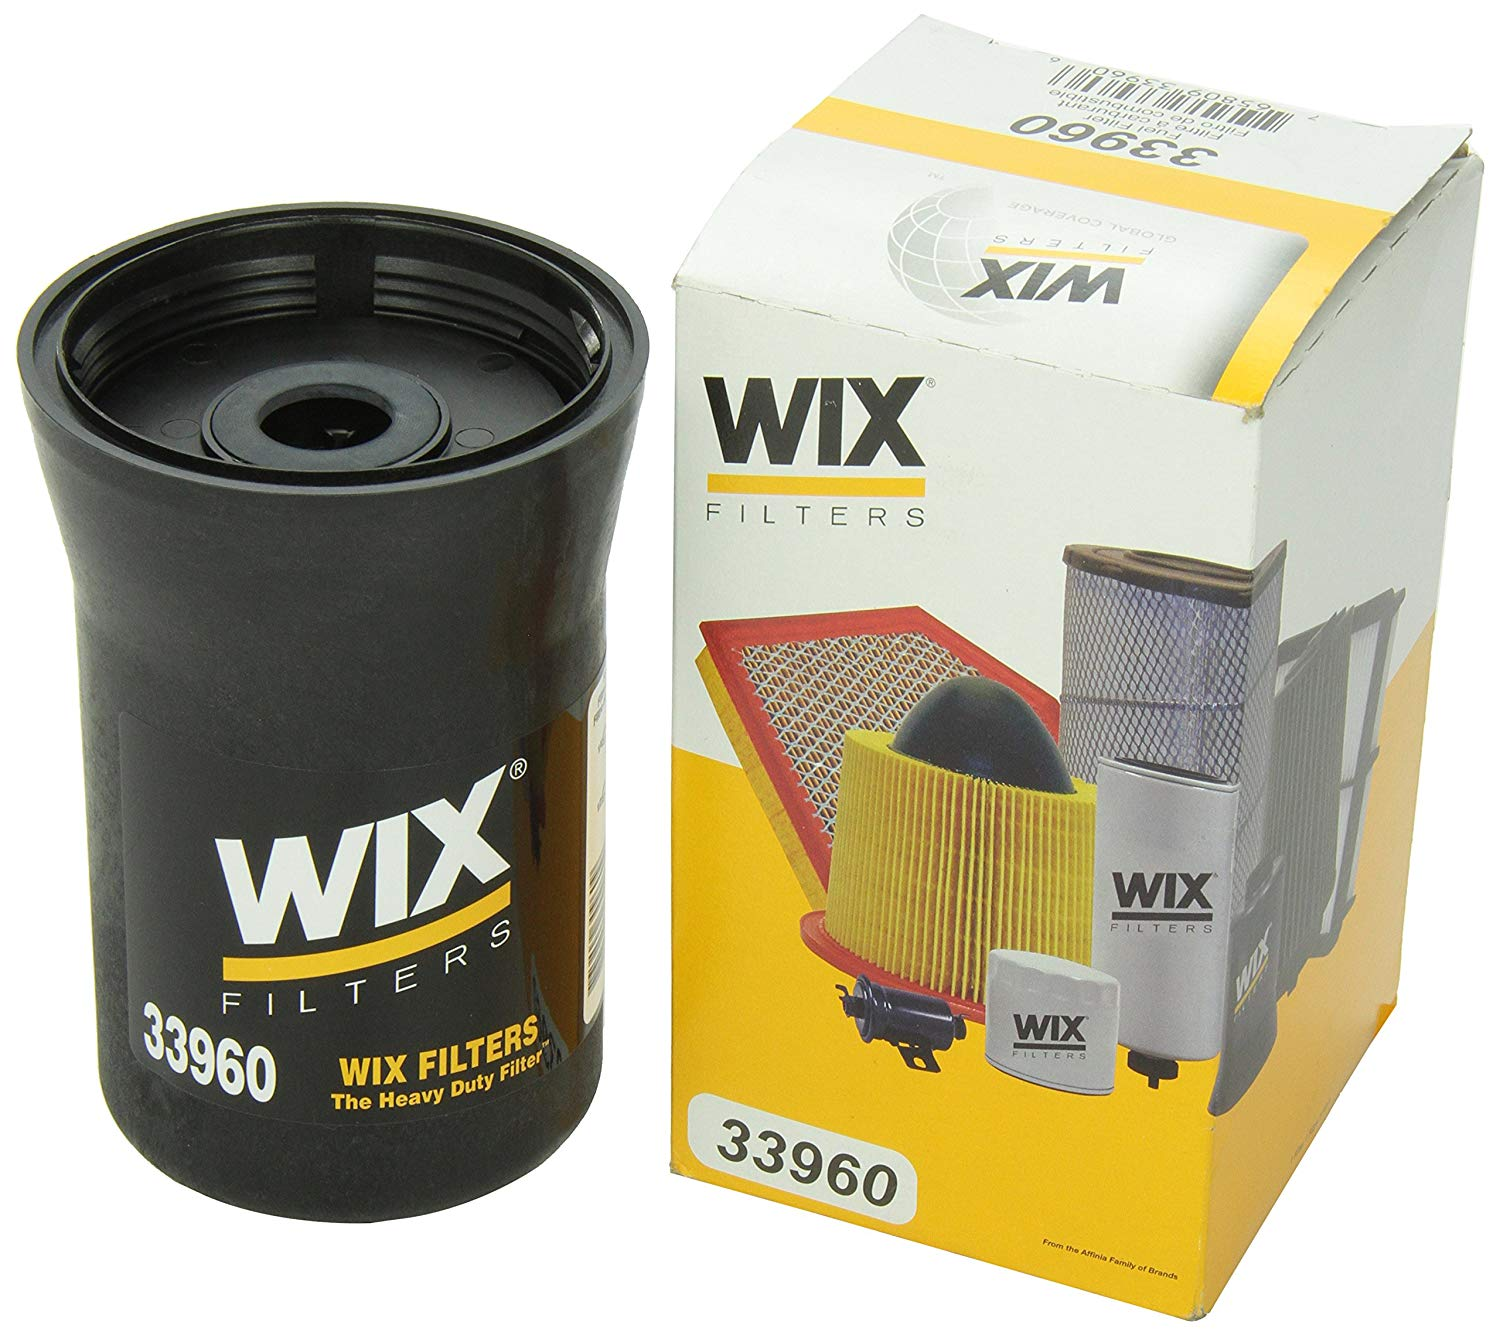 WIX Filters Heavy Duty Fuel Filter for Duramax